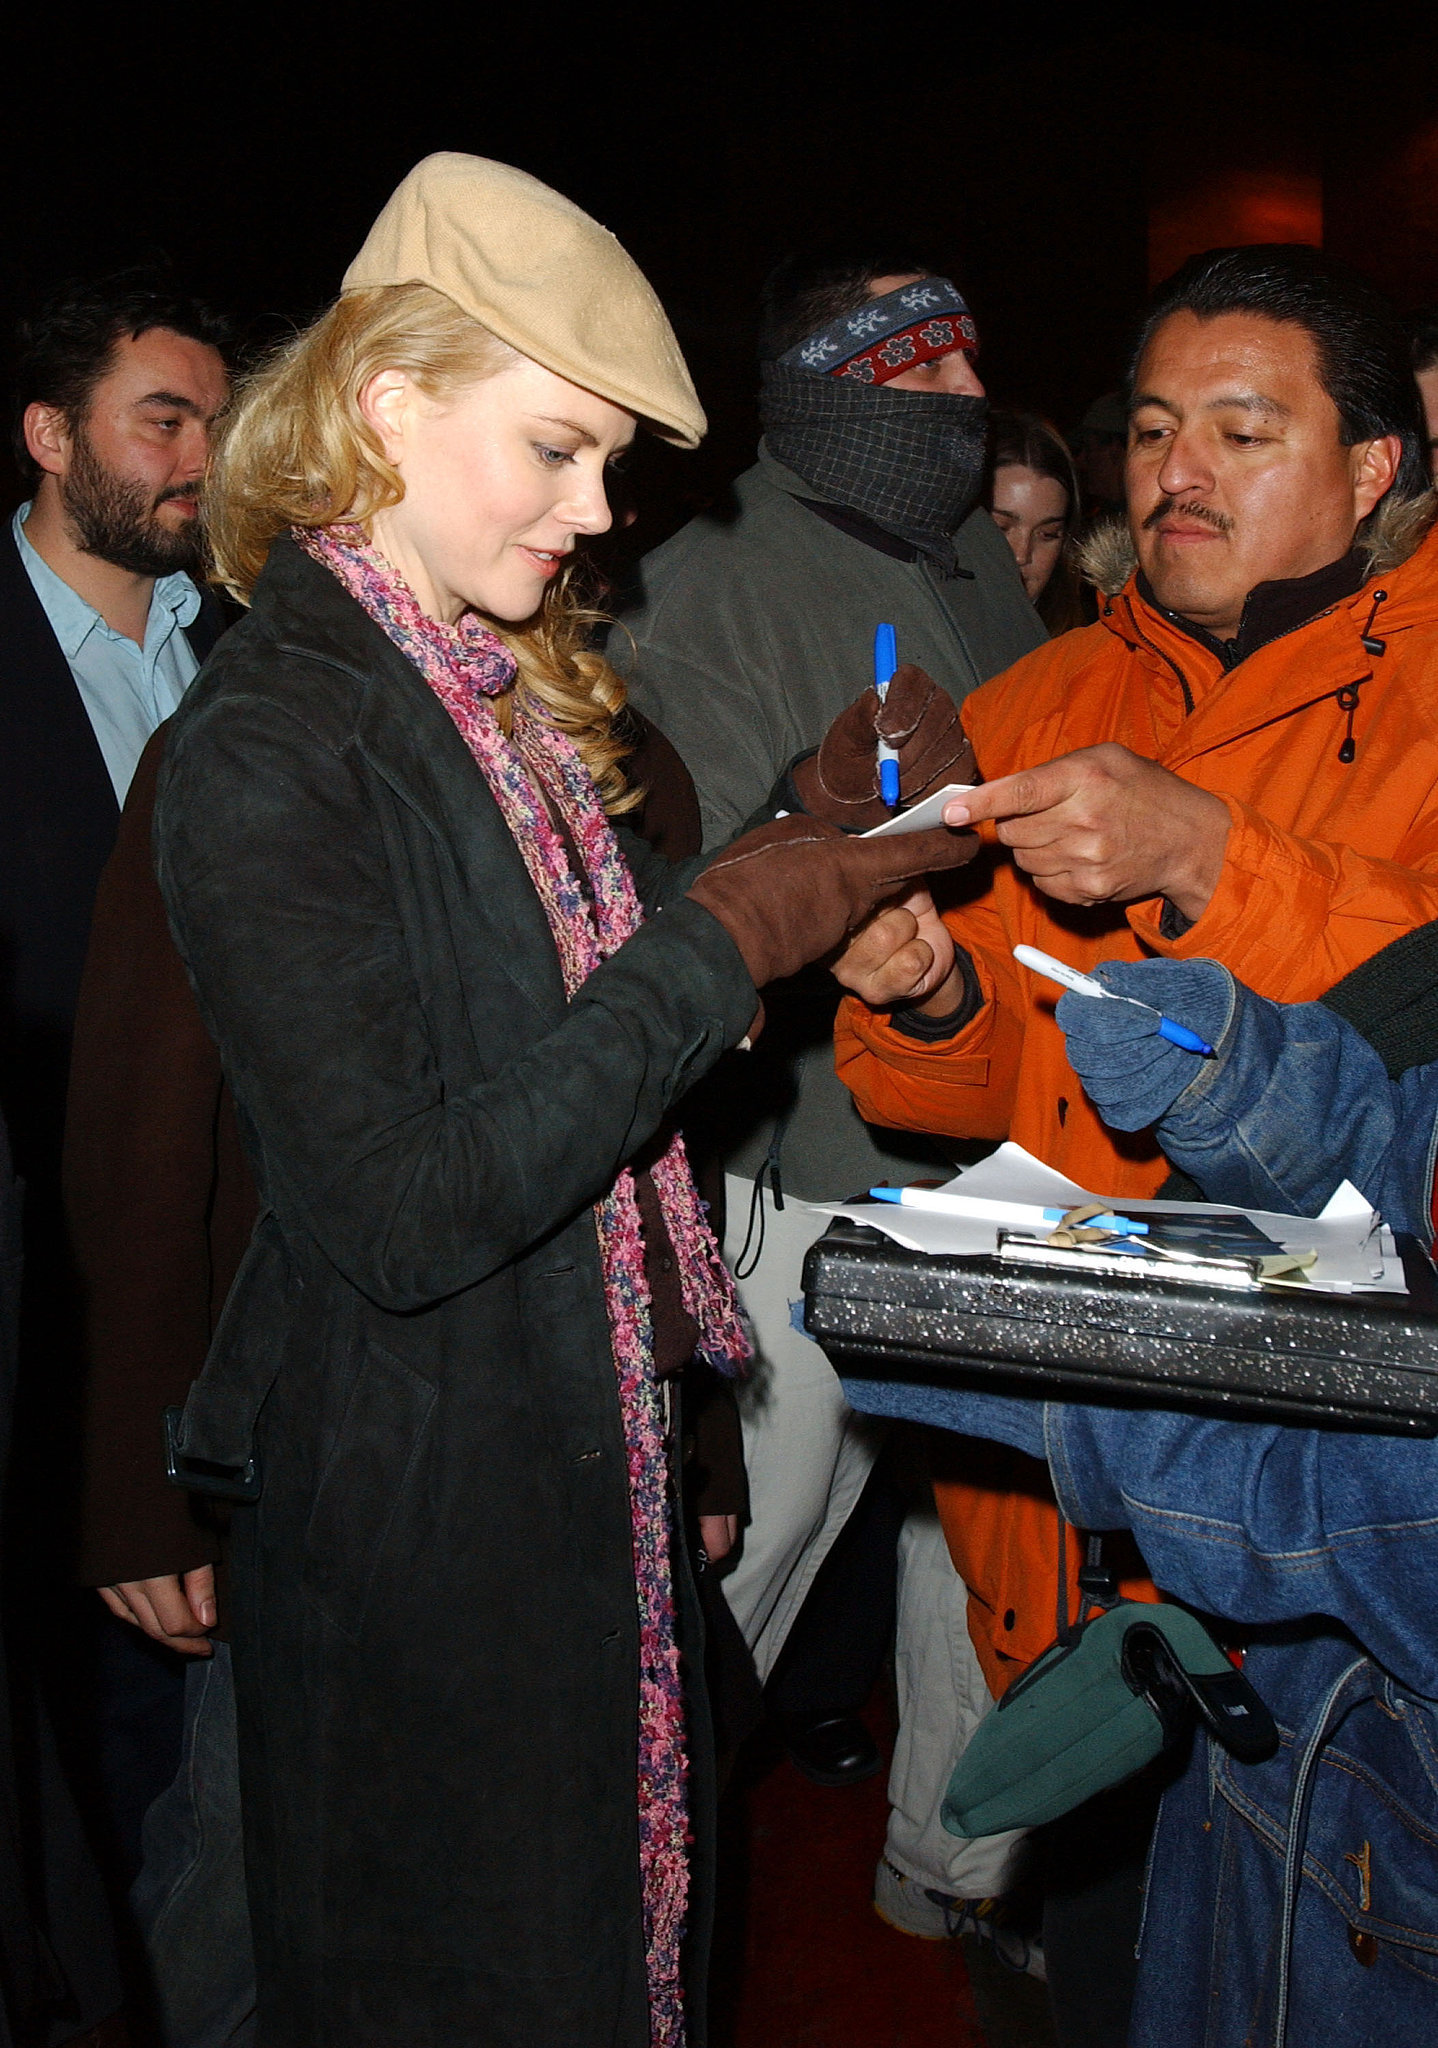 Singing Autographs at Sundance